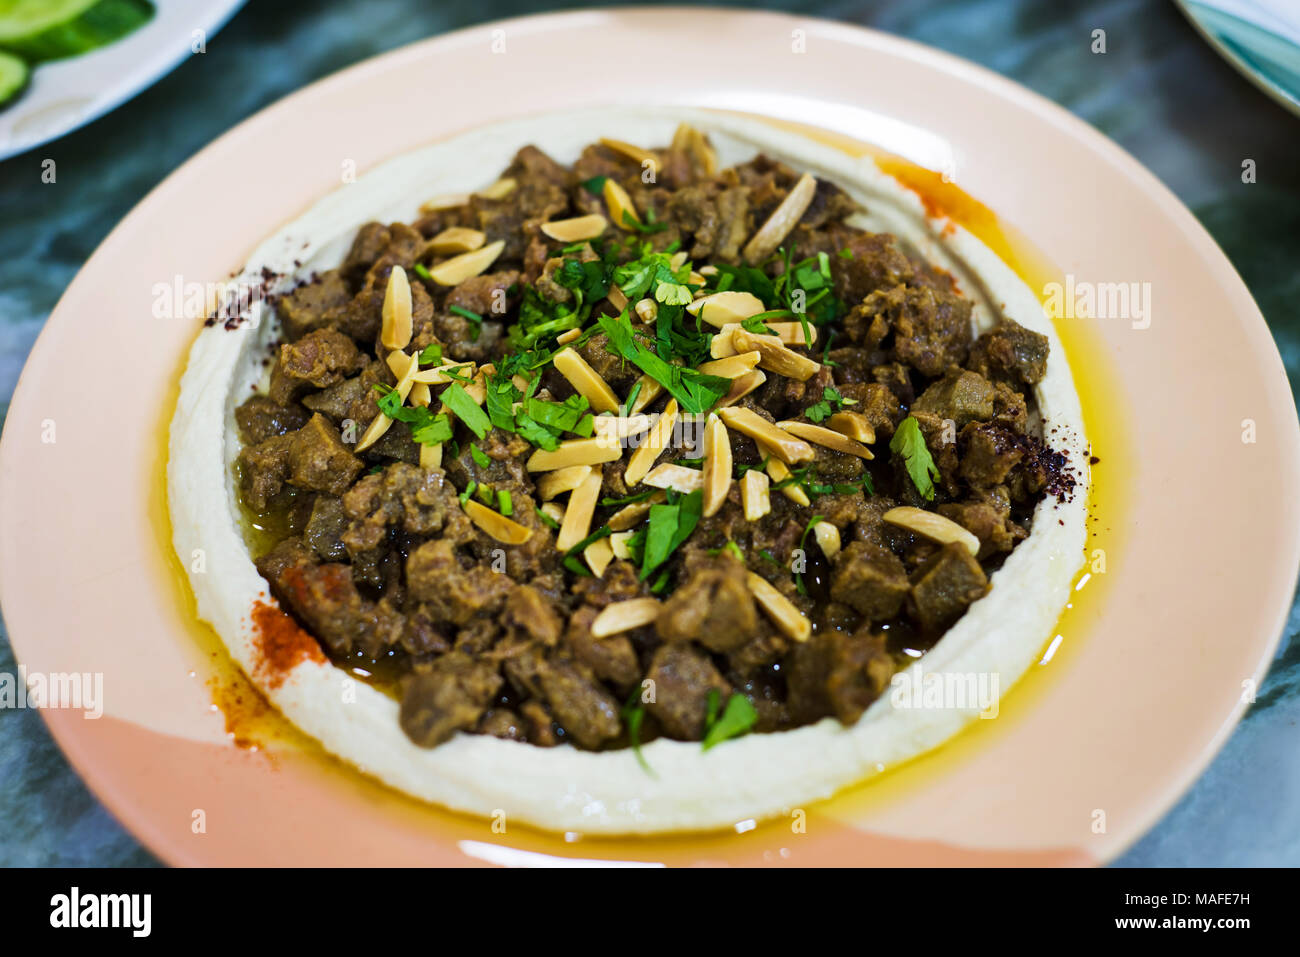 Meat with hummus on a plate traditional arabic food stock photo meat with hummus on a plate traditional arabic food forumfinder Gallery